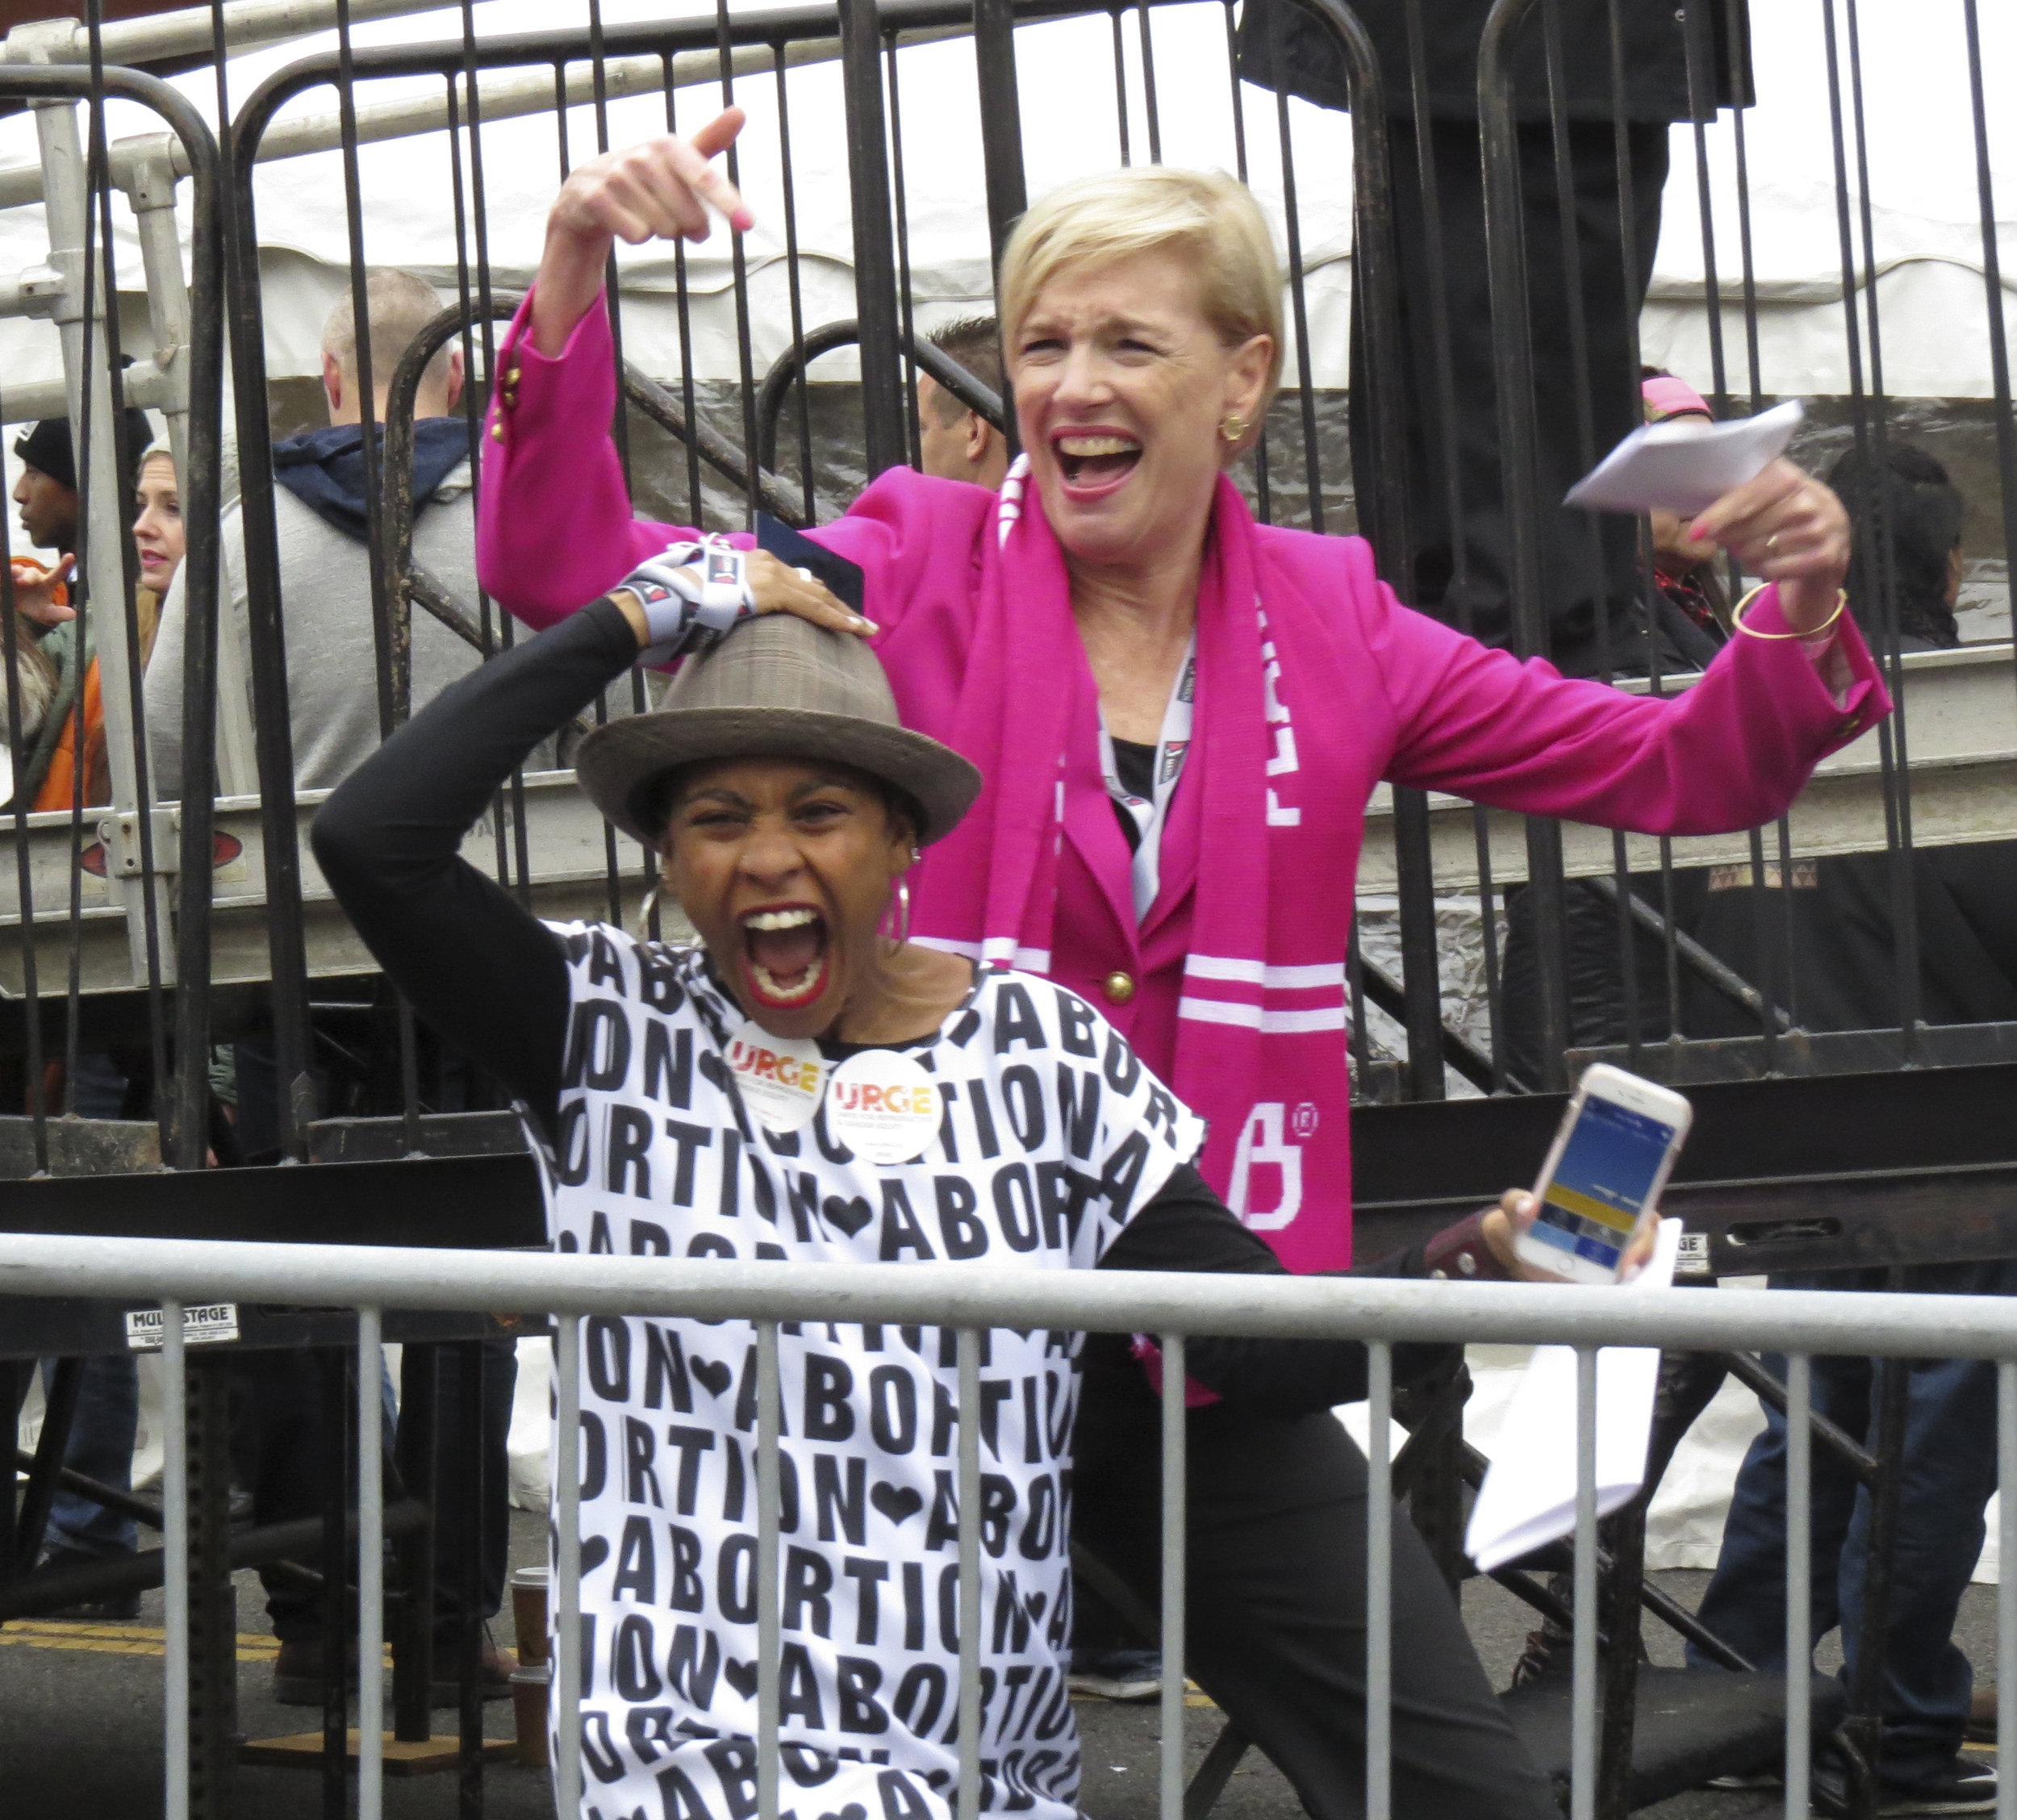 Planned Parenthood President Cecile Richards at Women's March on Washington